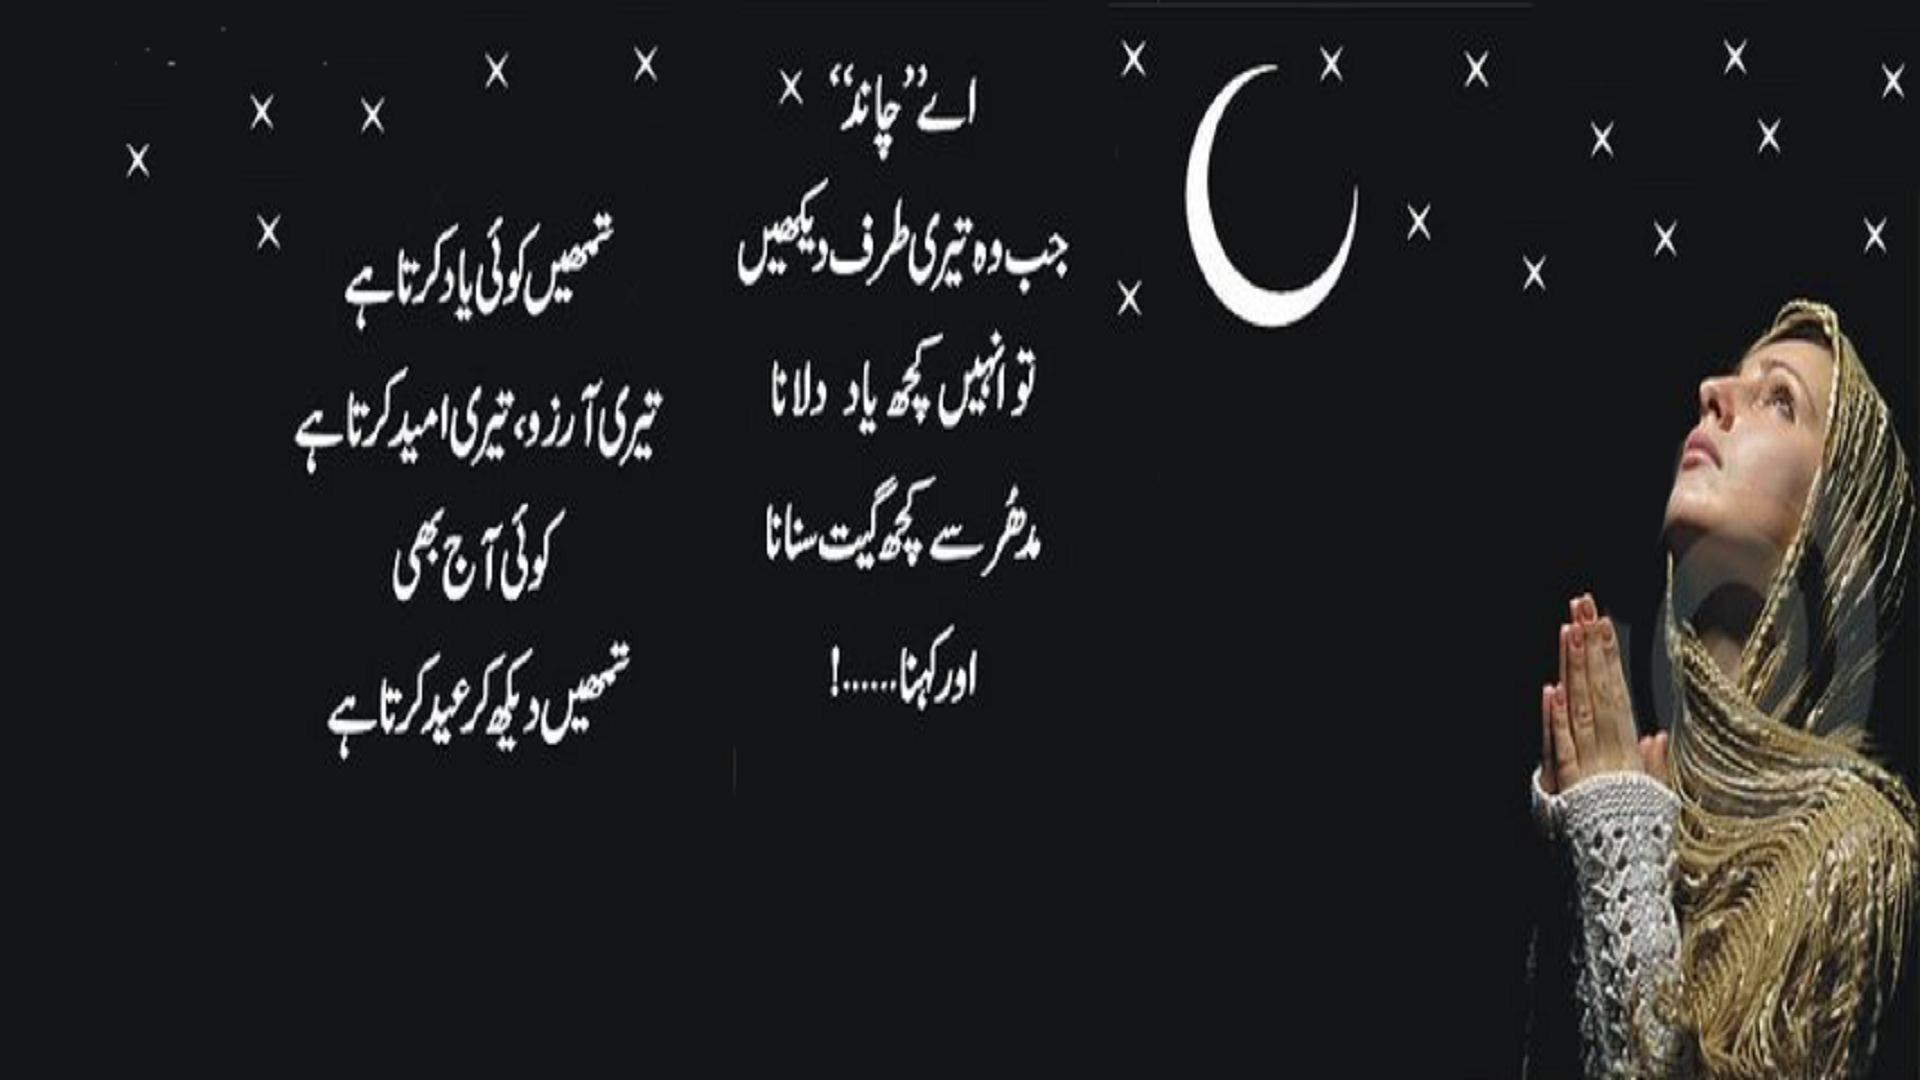 Chand Raat Mubarak Wallpapers 10